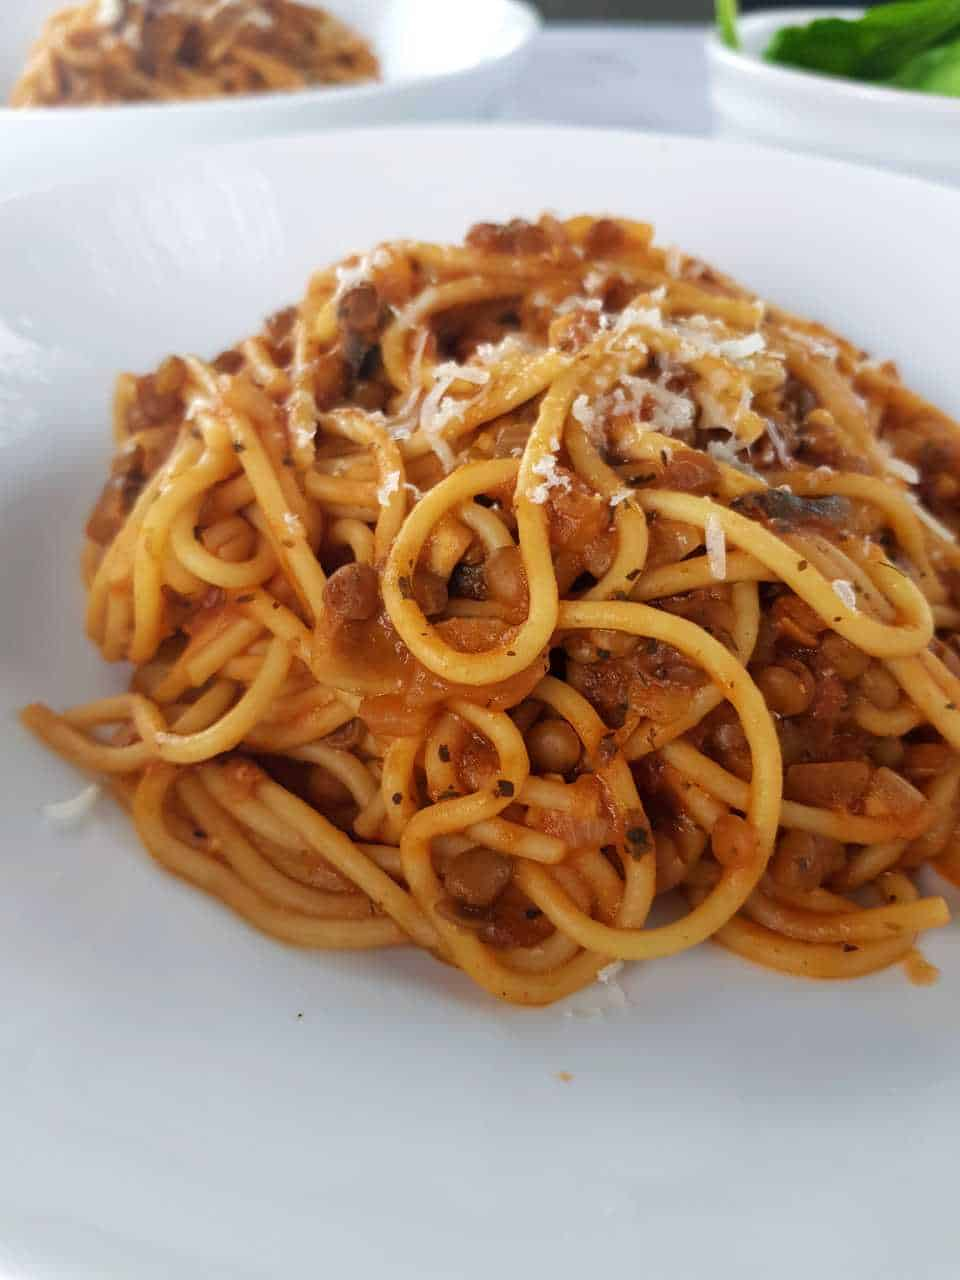 Mushroom and lentil bolognese on a white plate.